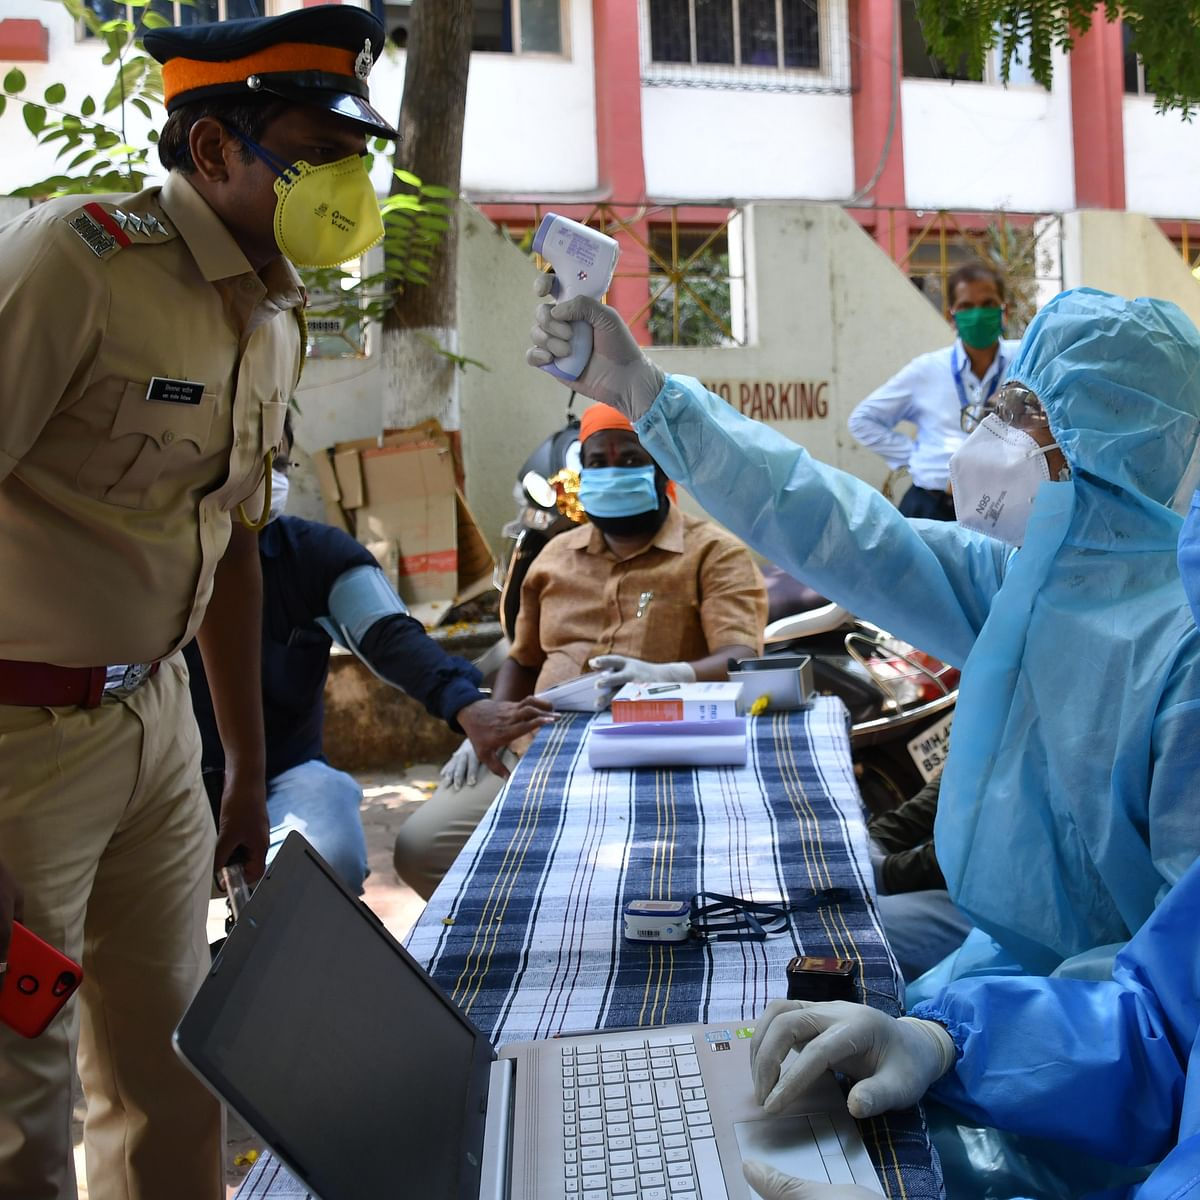 Coronavirus in Navi Mumbai: As cases rise, test-positivity rate alarms officials